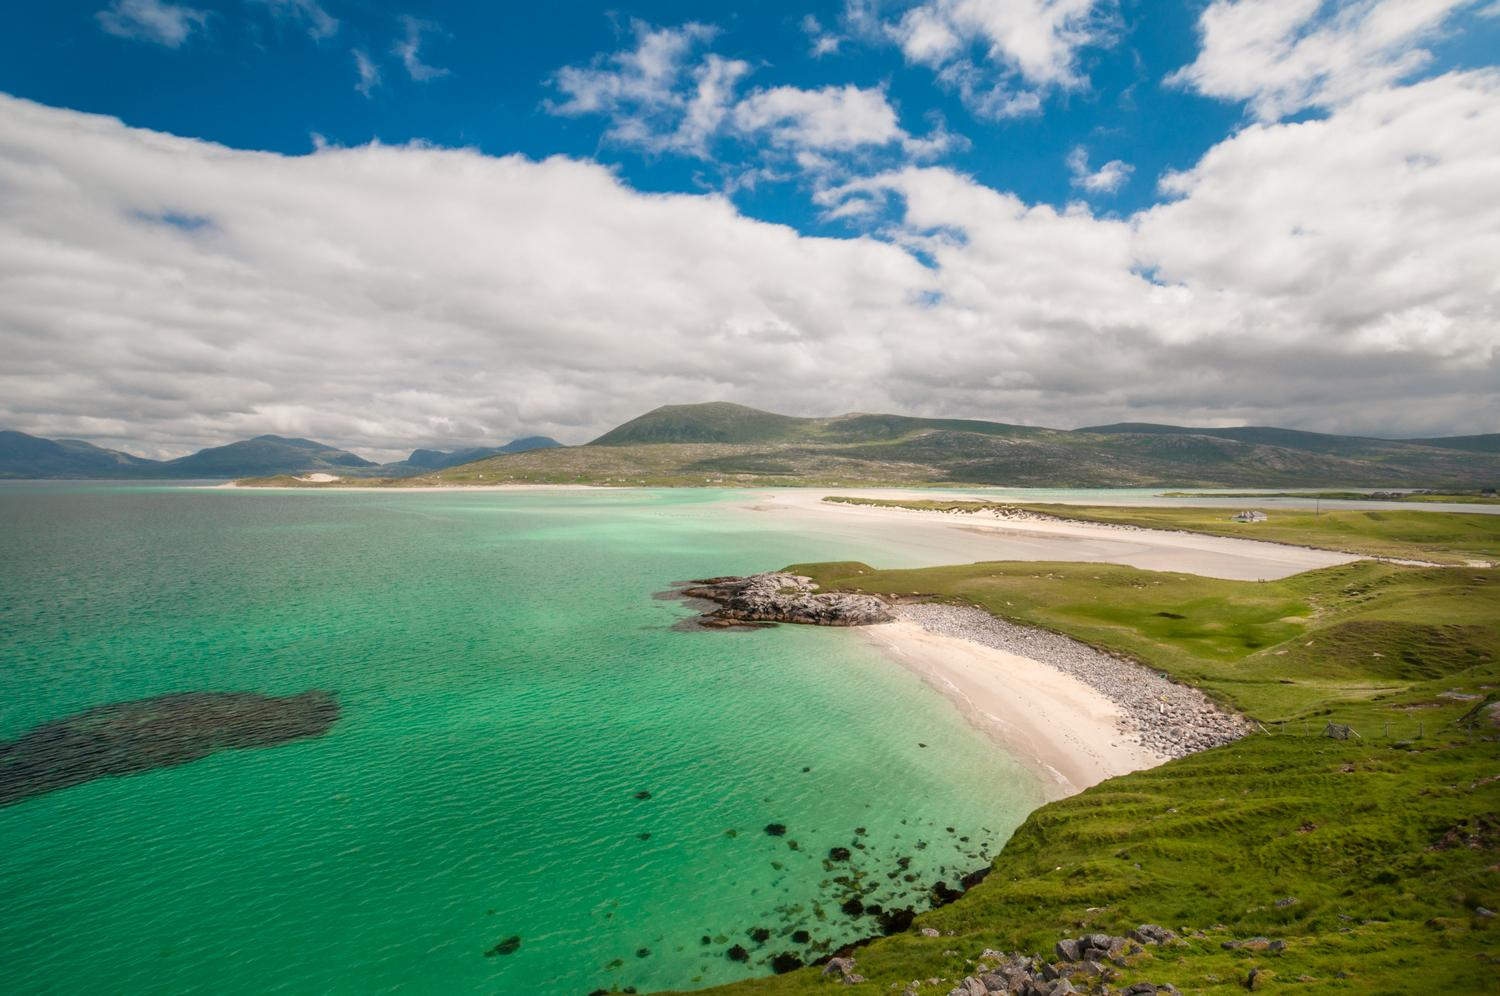 Self-guided walking holiday on Skye & the Outer Hebrides